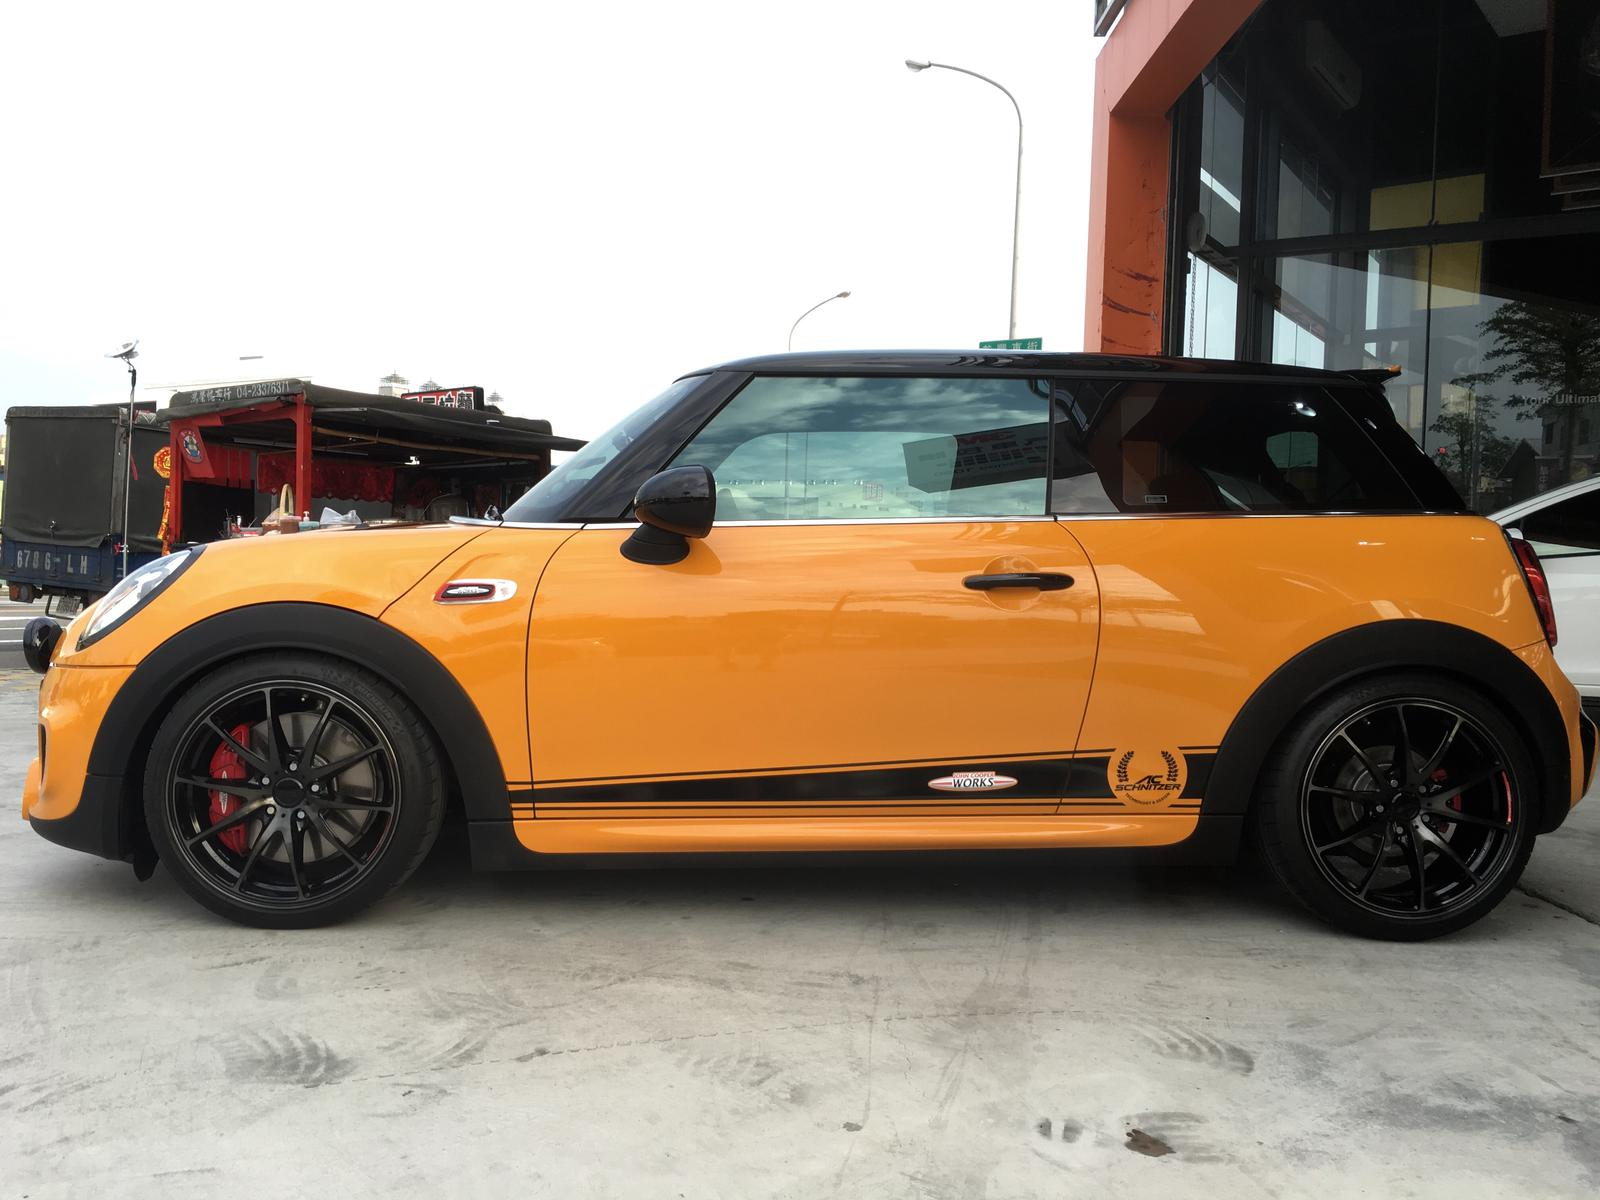 Volcanic Orange Jcw Page 2 2015 Mini Cooper Forum